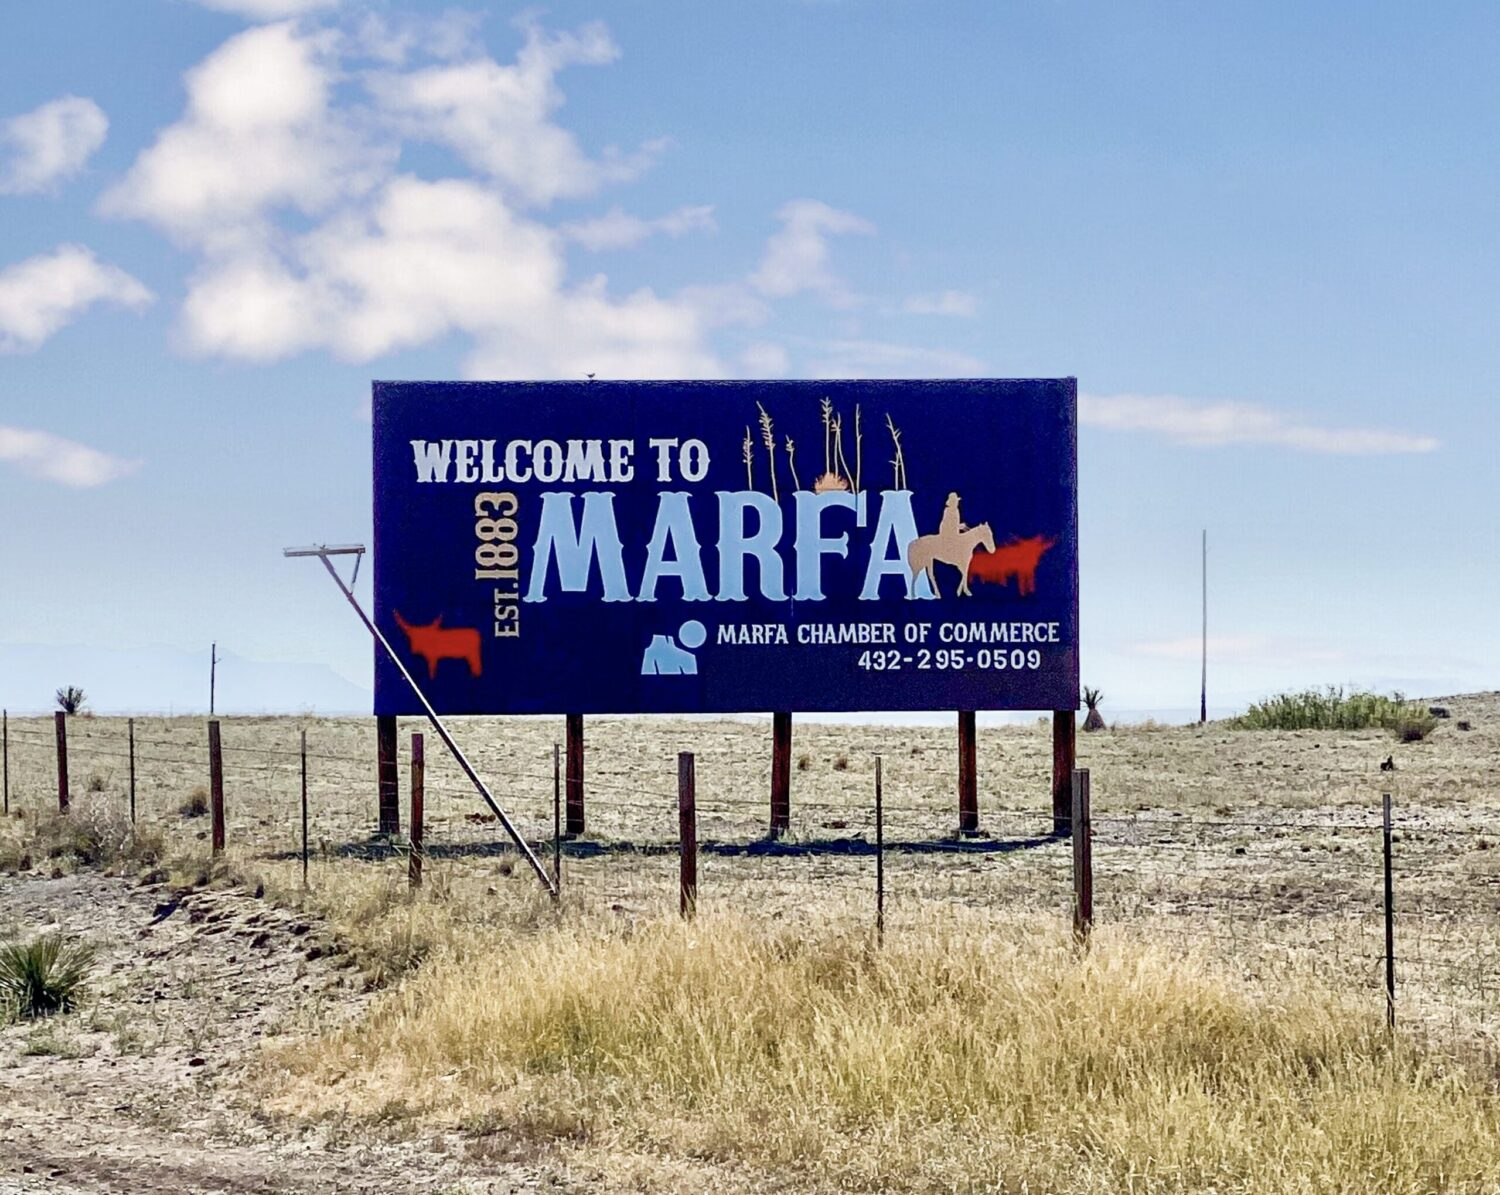 Read This Before You Take A Road Trip to Marfa Texas